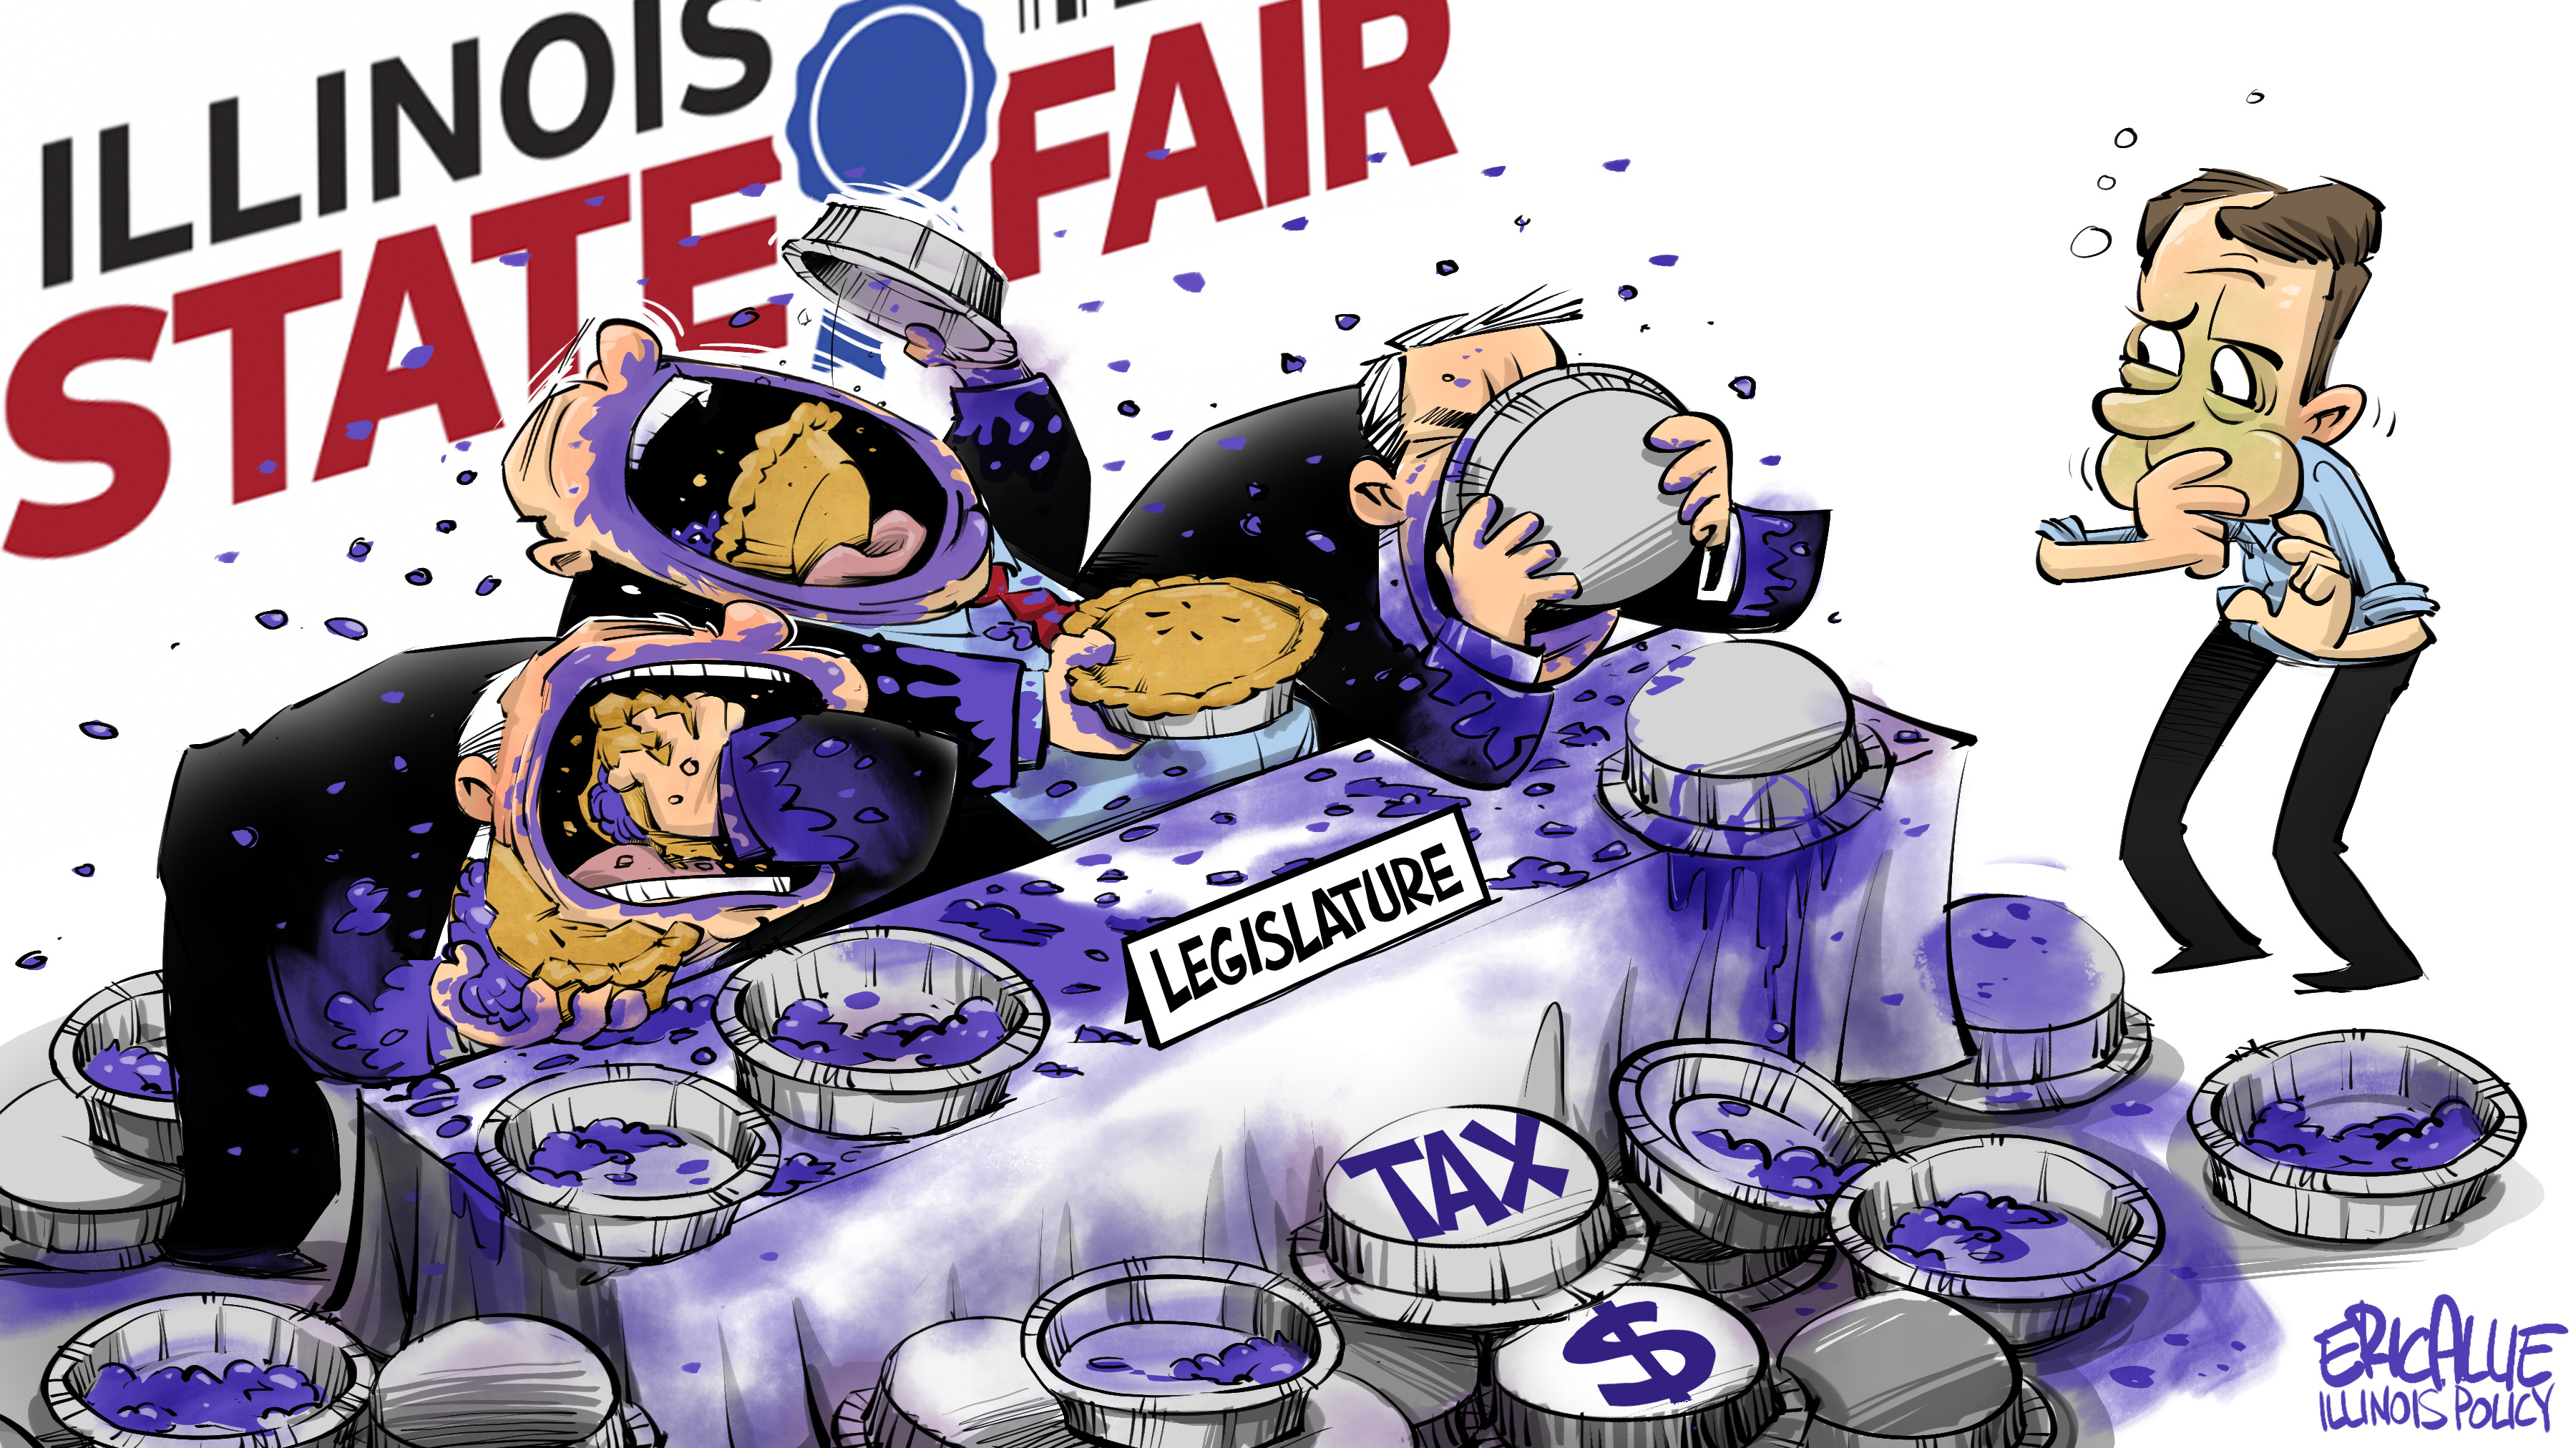 Illinois State Fair: Tax eating contest